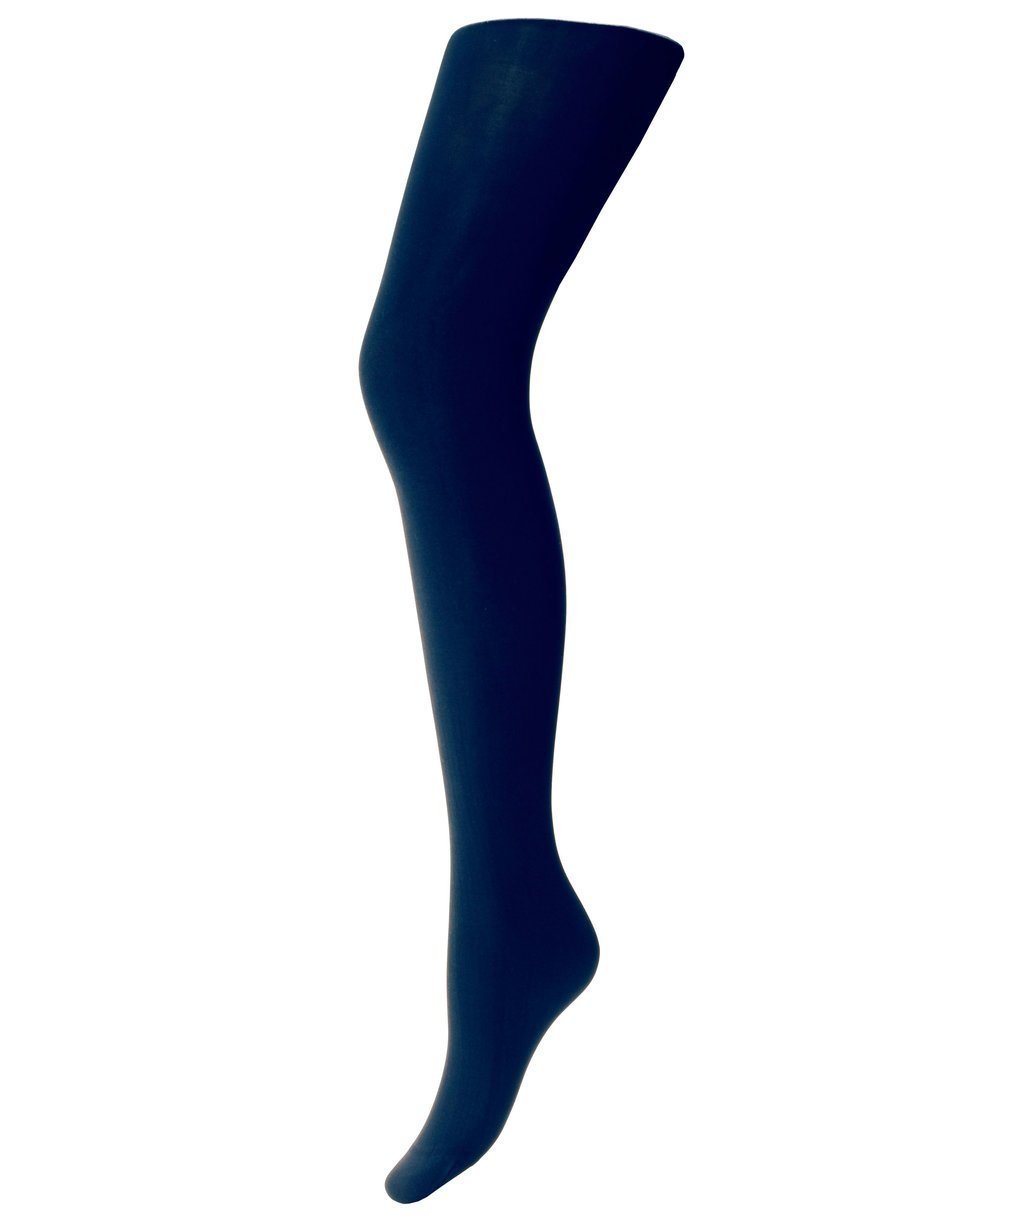 Decoy Microfiber Tights 3D 60 den., Blue Iris